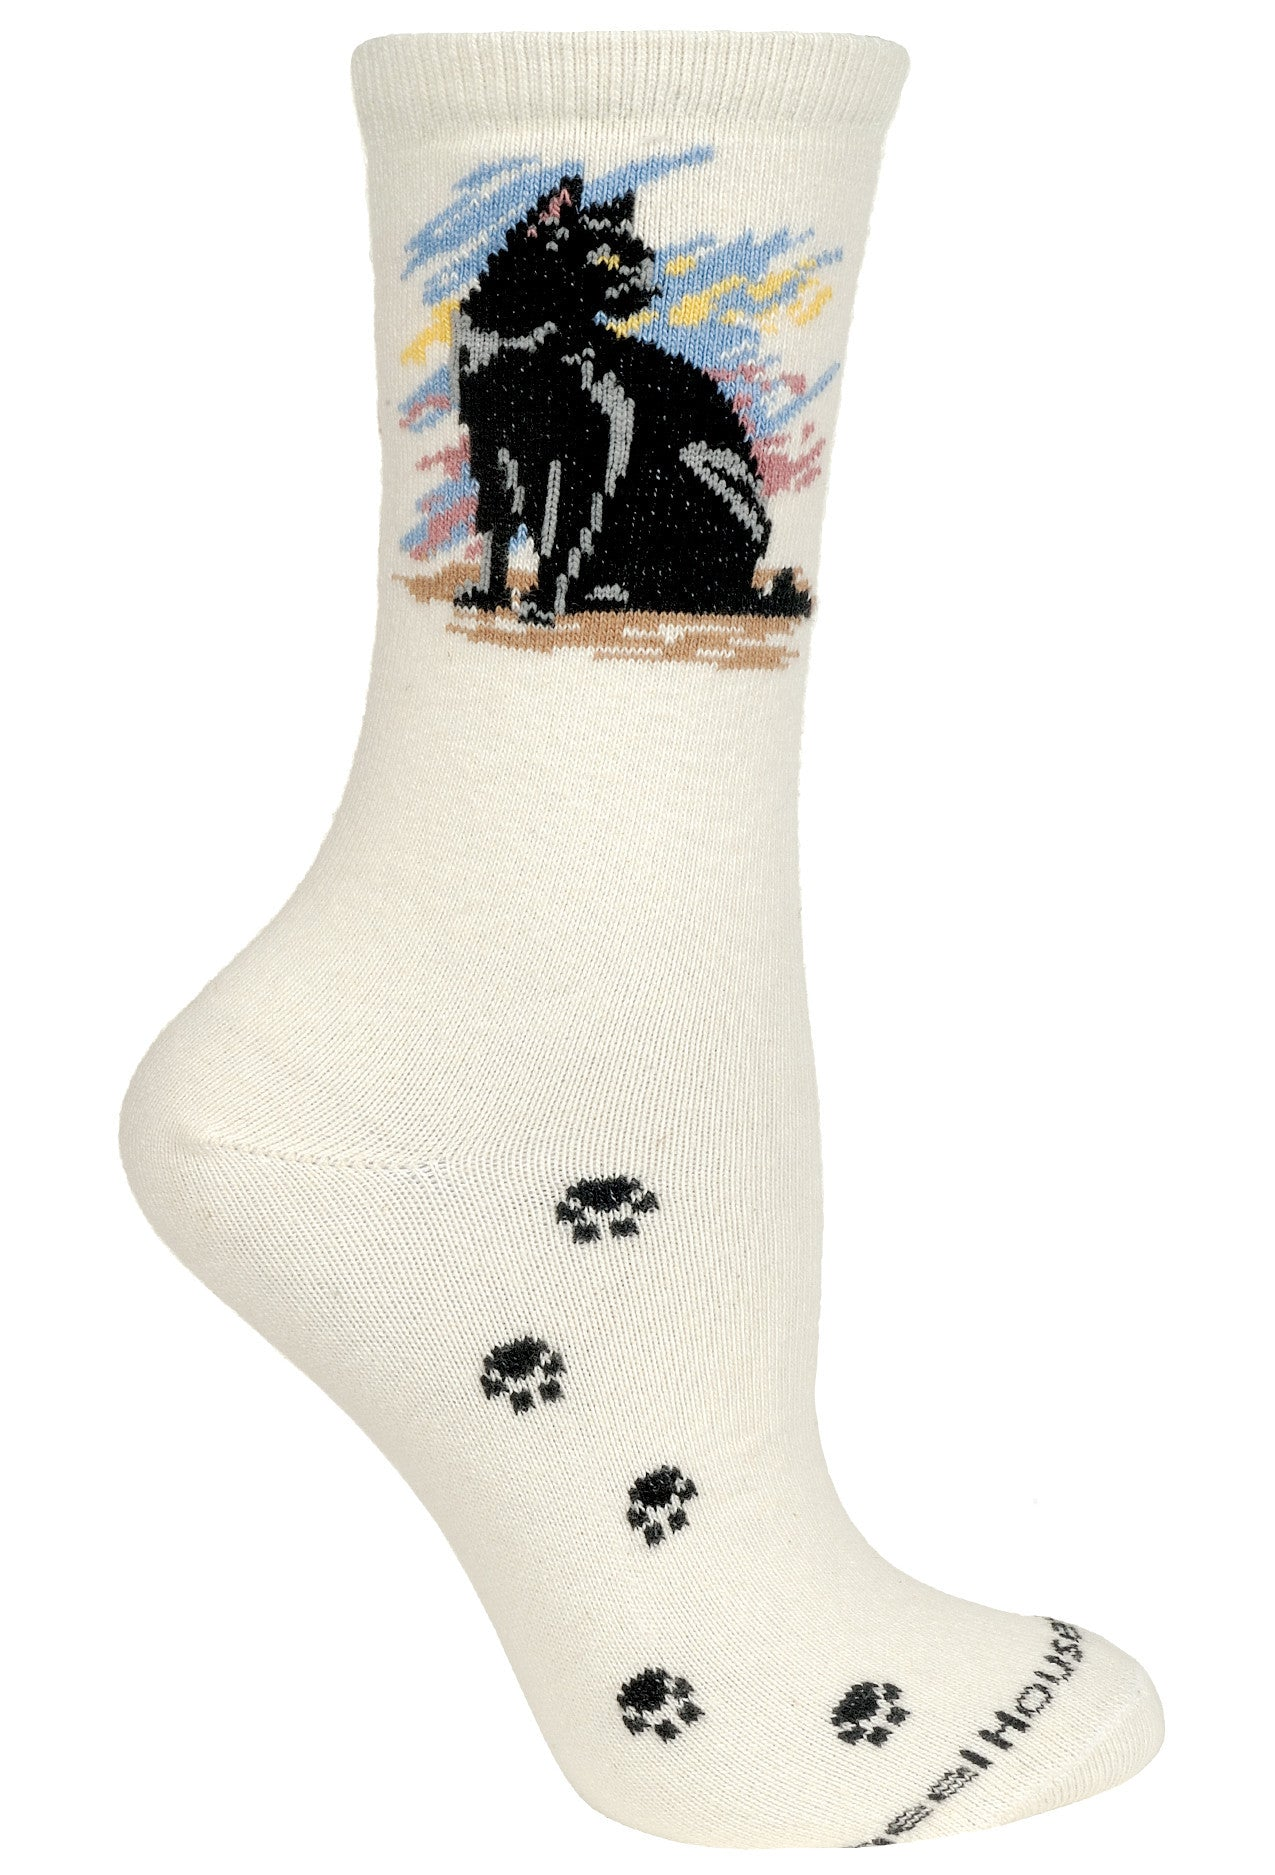 Black Cat on Natural Socks